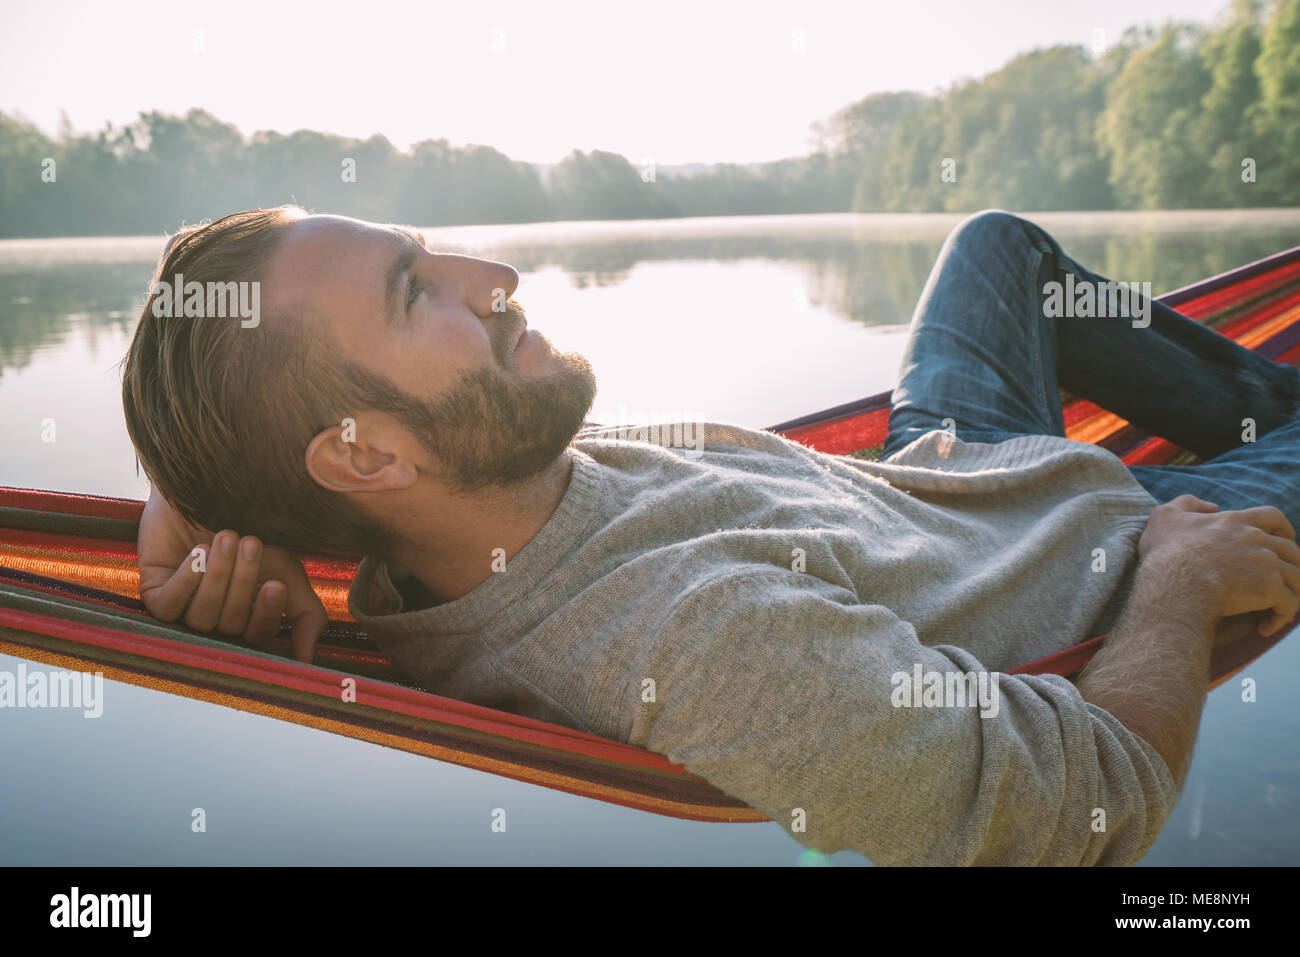 Young man on hammock relaxing by the lake in the morning, sunlight. People travel wellbeing laziness concept. France, Europe Stock Photo